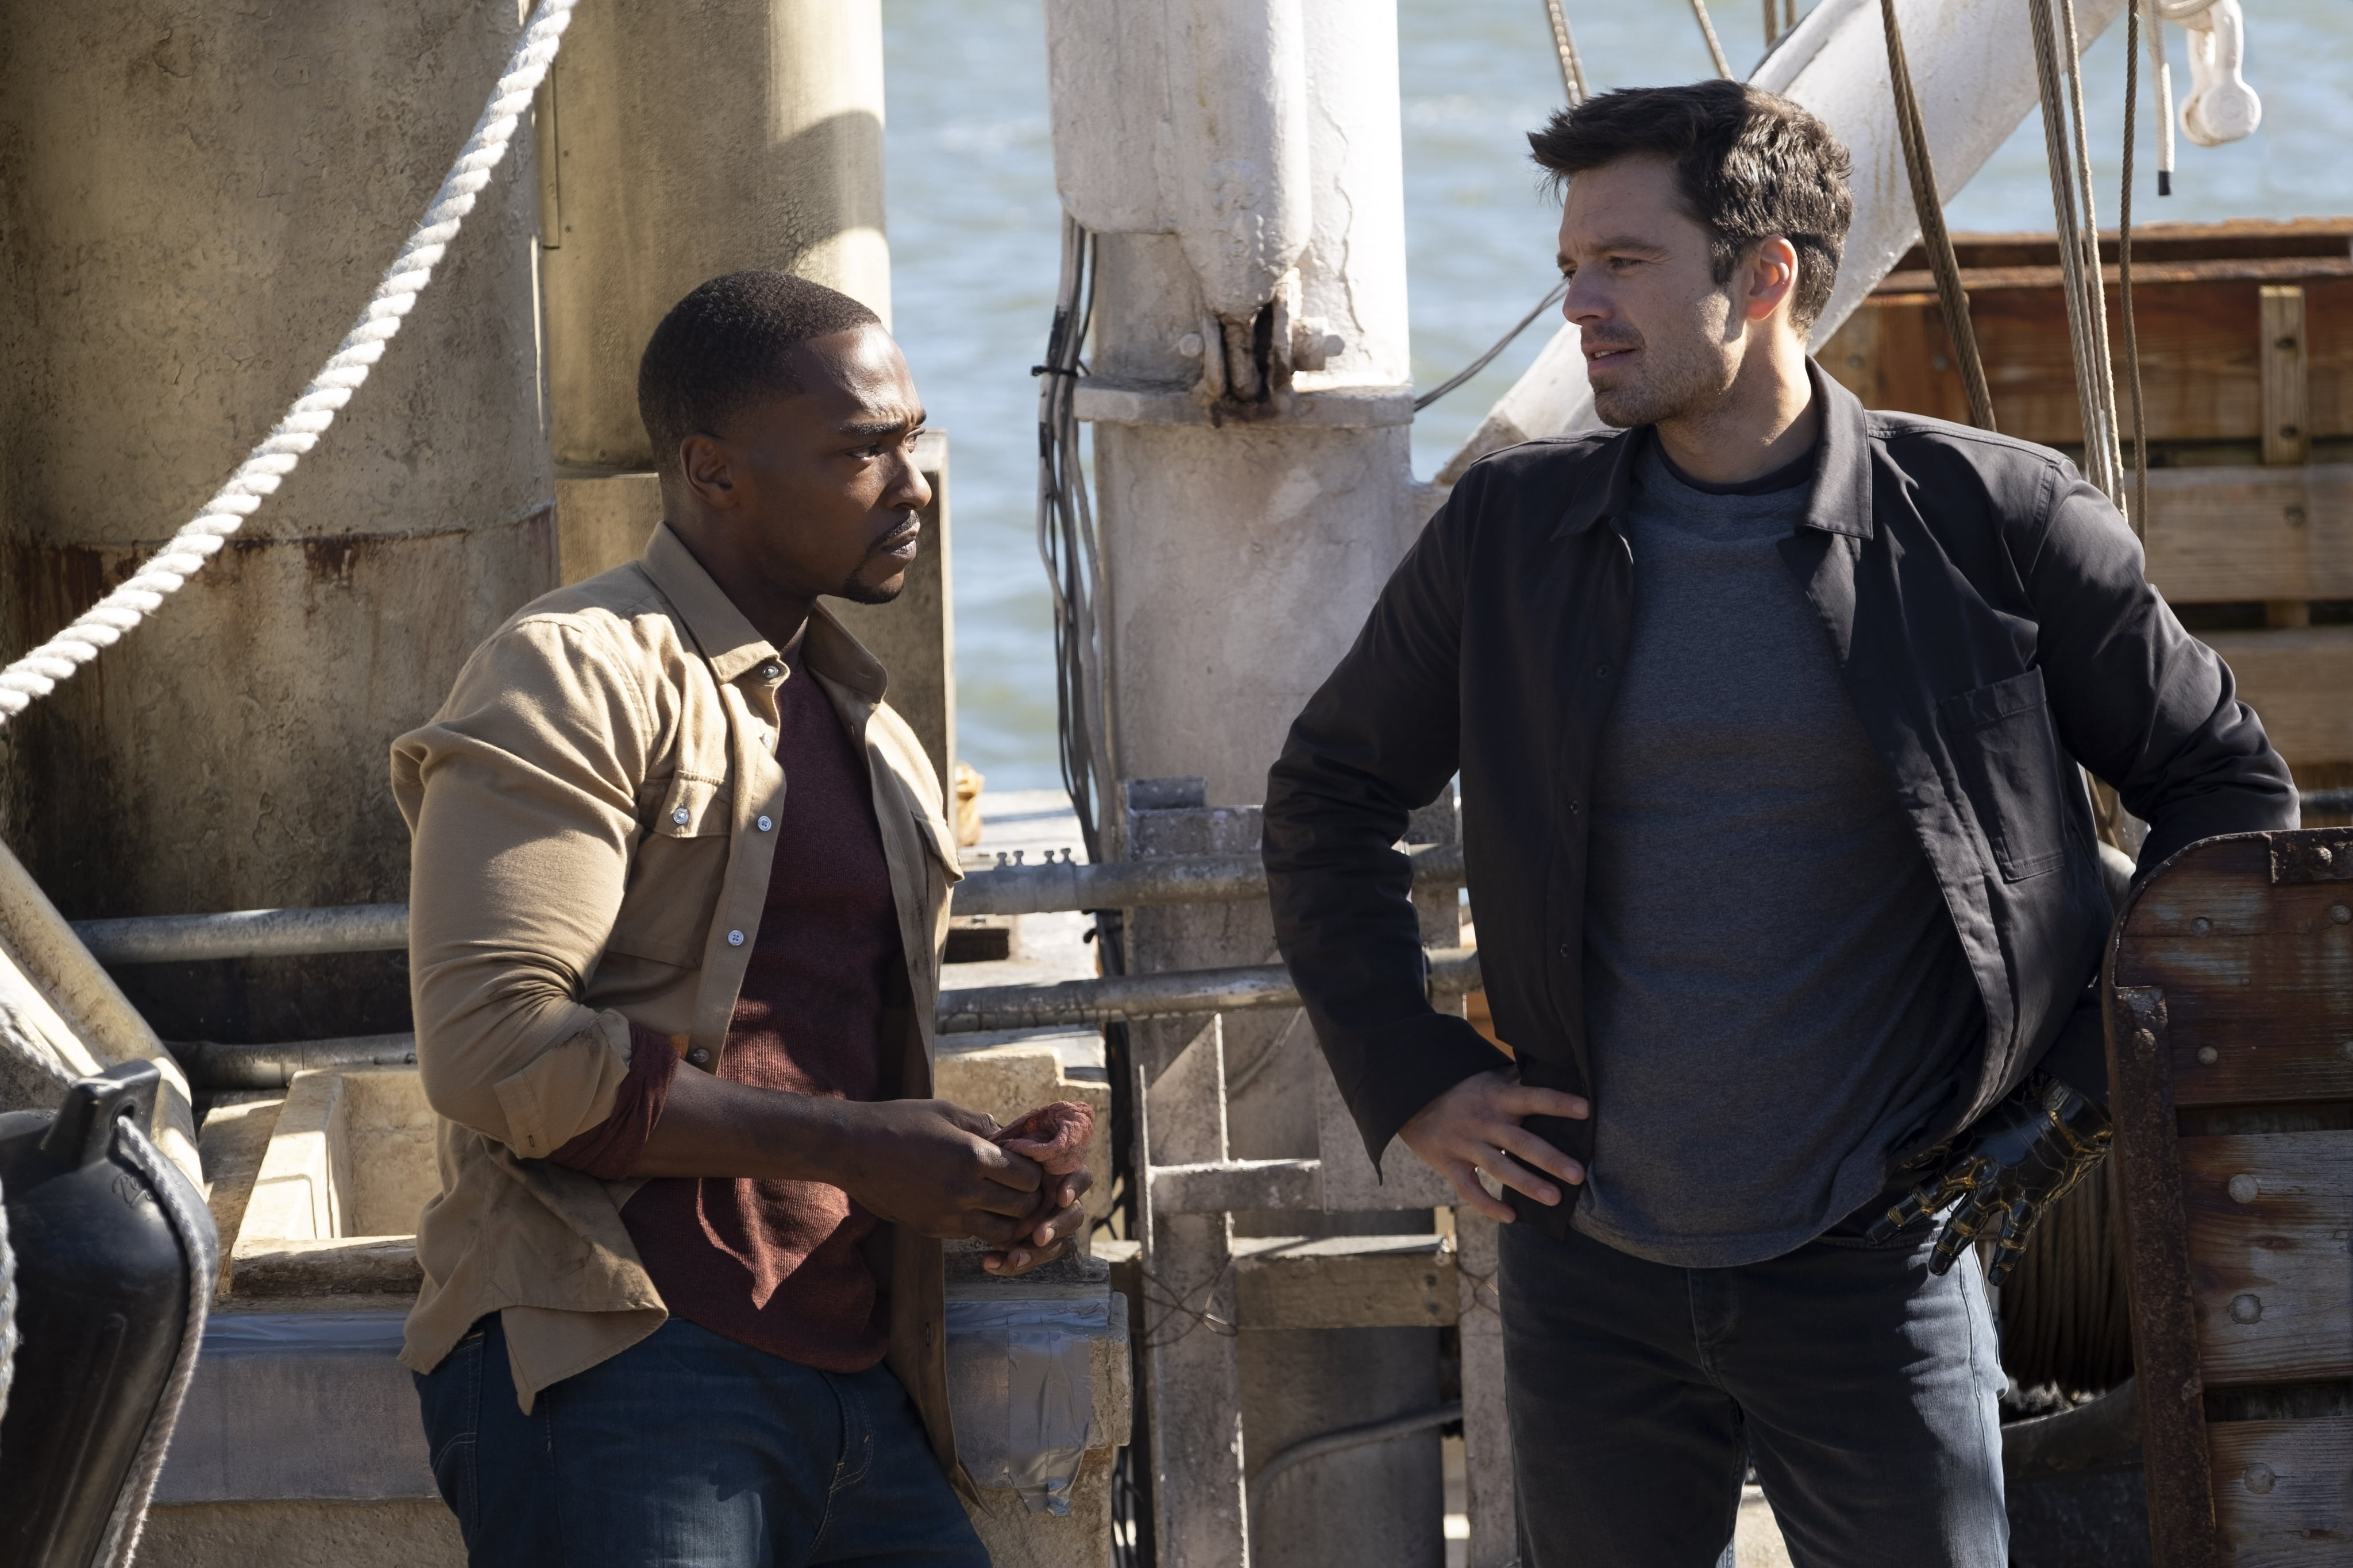 Sam Wilson/The Falcon (Anthony Mackie) and Bucky Barnes/The Winter Soldier (Sebastian Stan) in Marvel Studios' THE FALCON AND THE WINTER SOLDIER exclusively on Disney+. Photo by Chuck Zlotnick. Credit Marvel Studios 2021. All Rights Reserved.